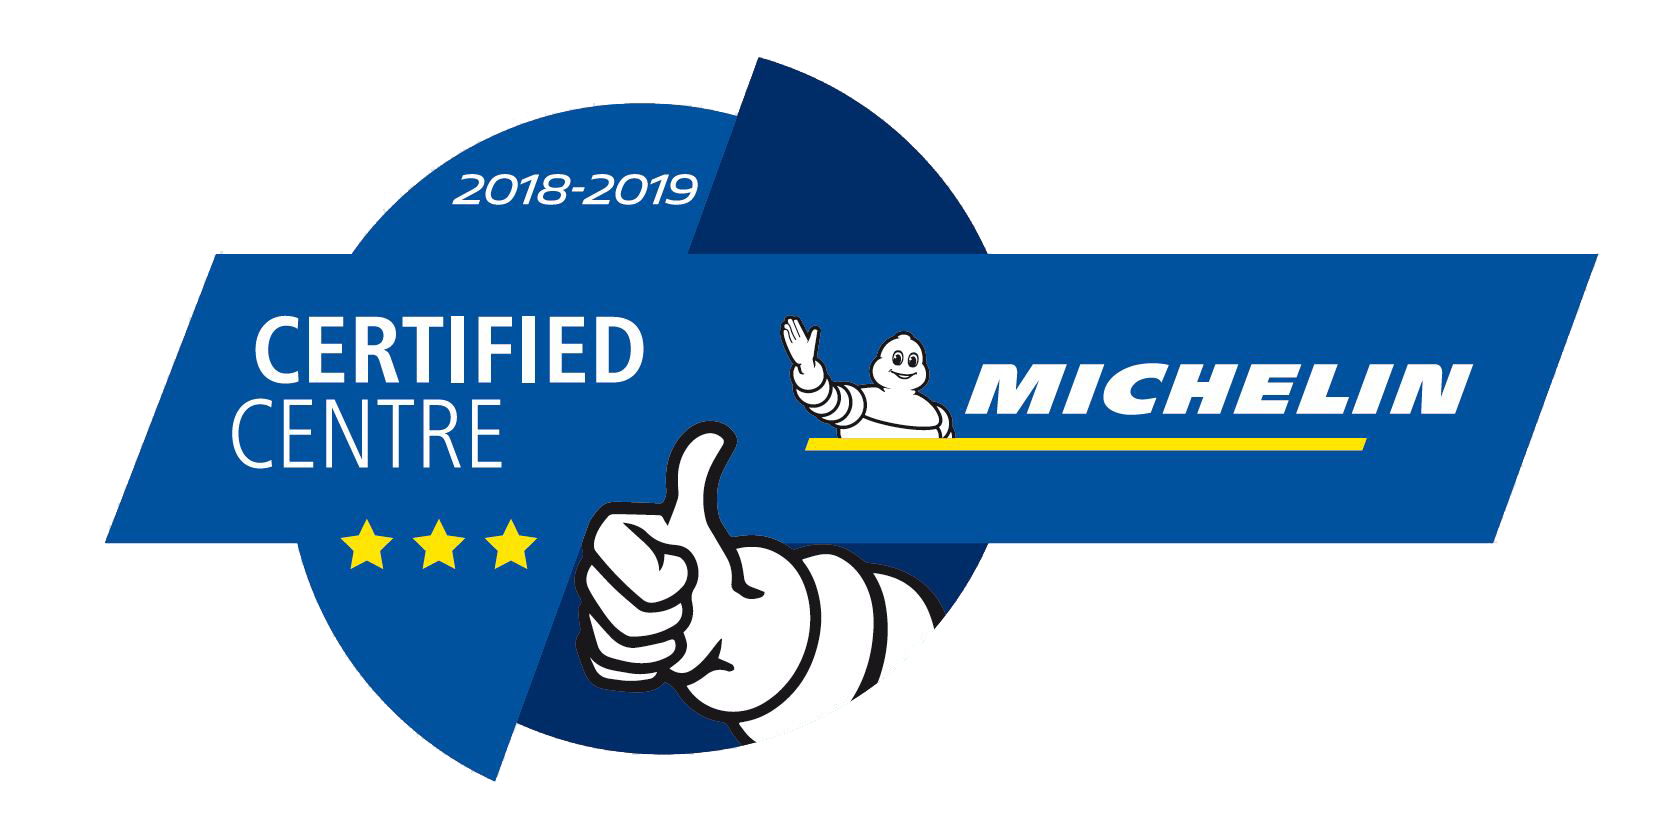 Michelin certified center